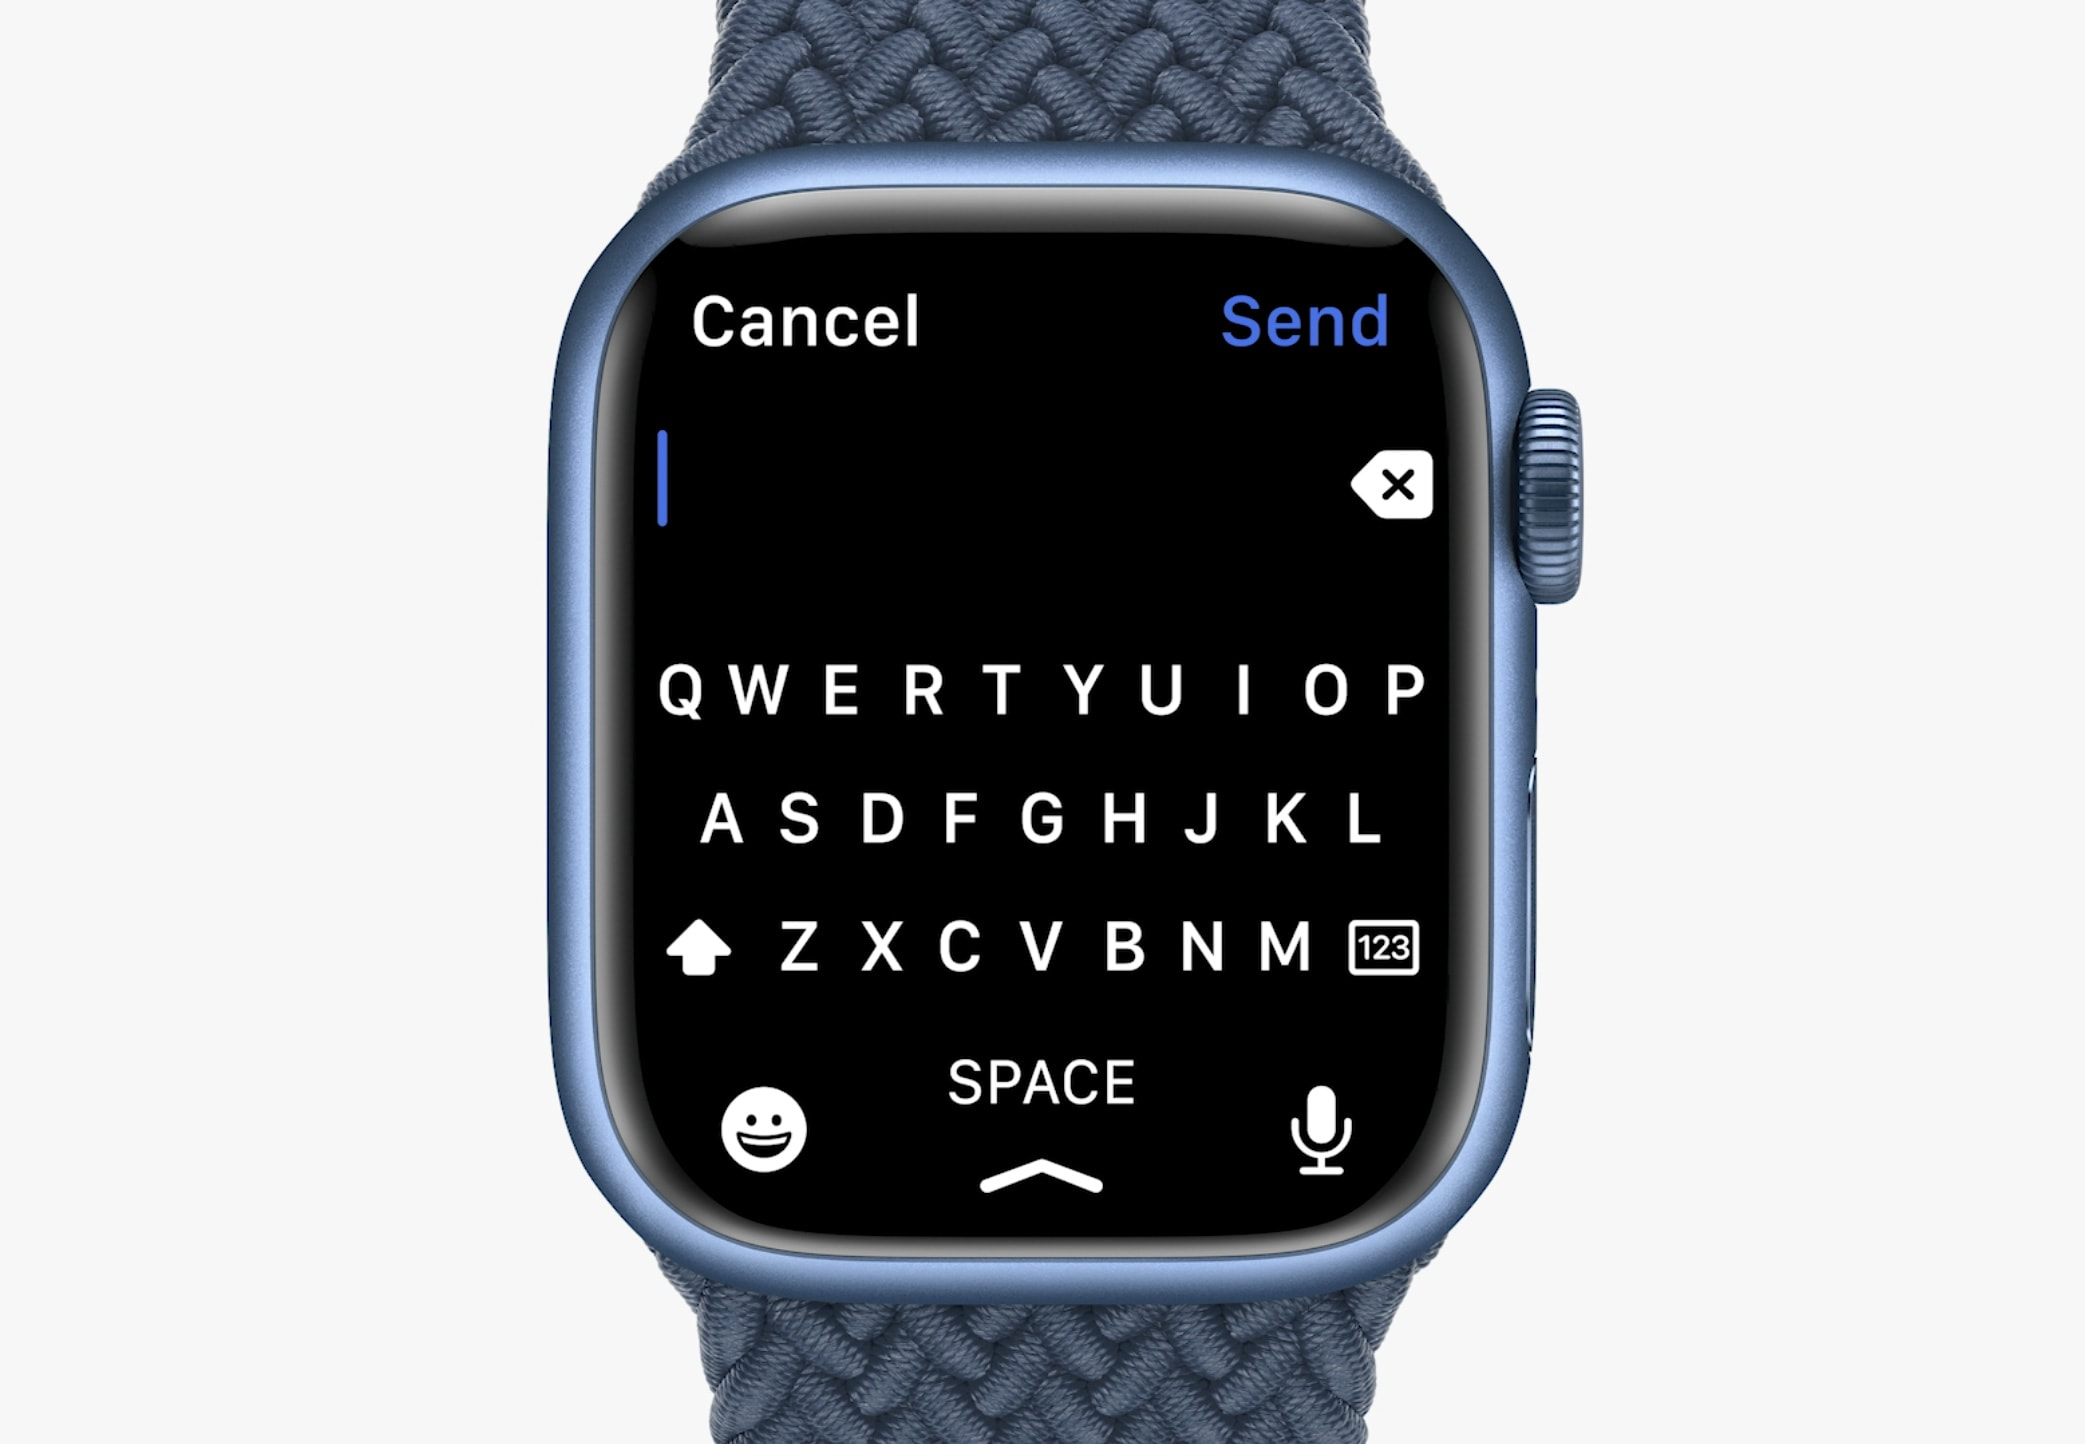 Apple Watch Series 7 includes an onscreen keyboard. Yes, really.